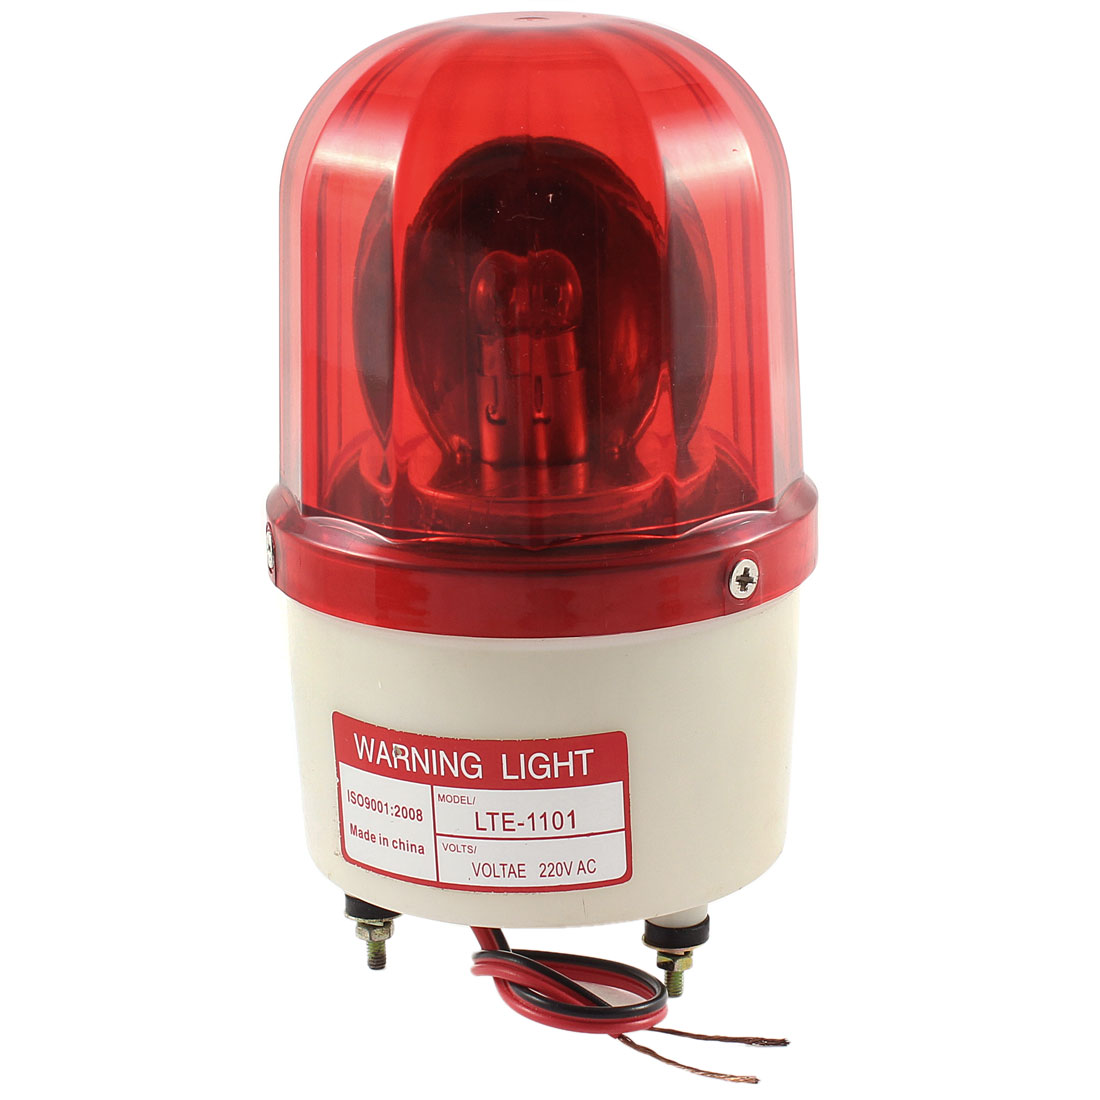 AC 220V 10W Industrial Alarm System Red Rotating Warning Light Lamp LTE-1101